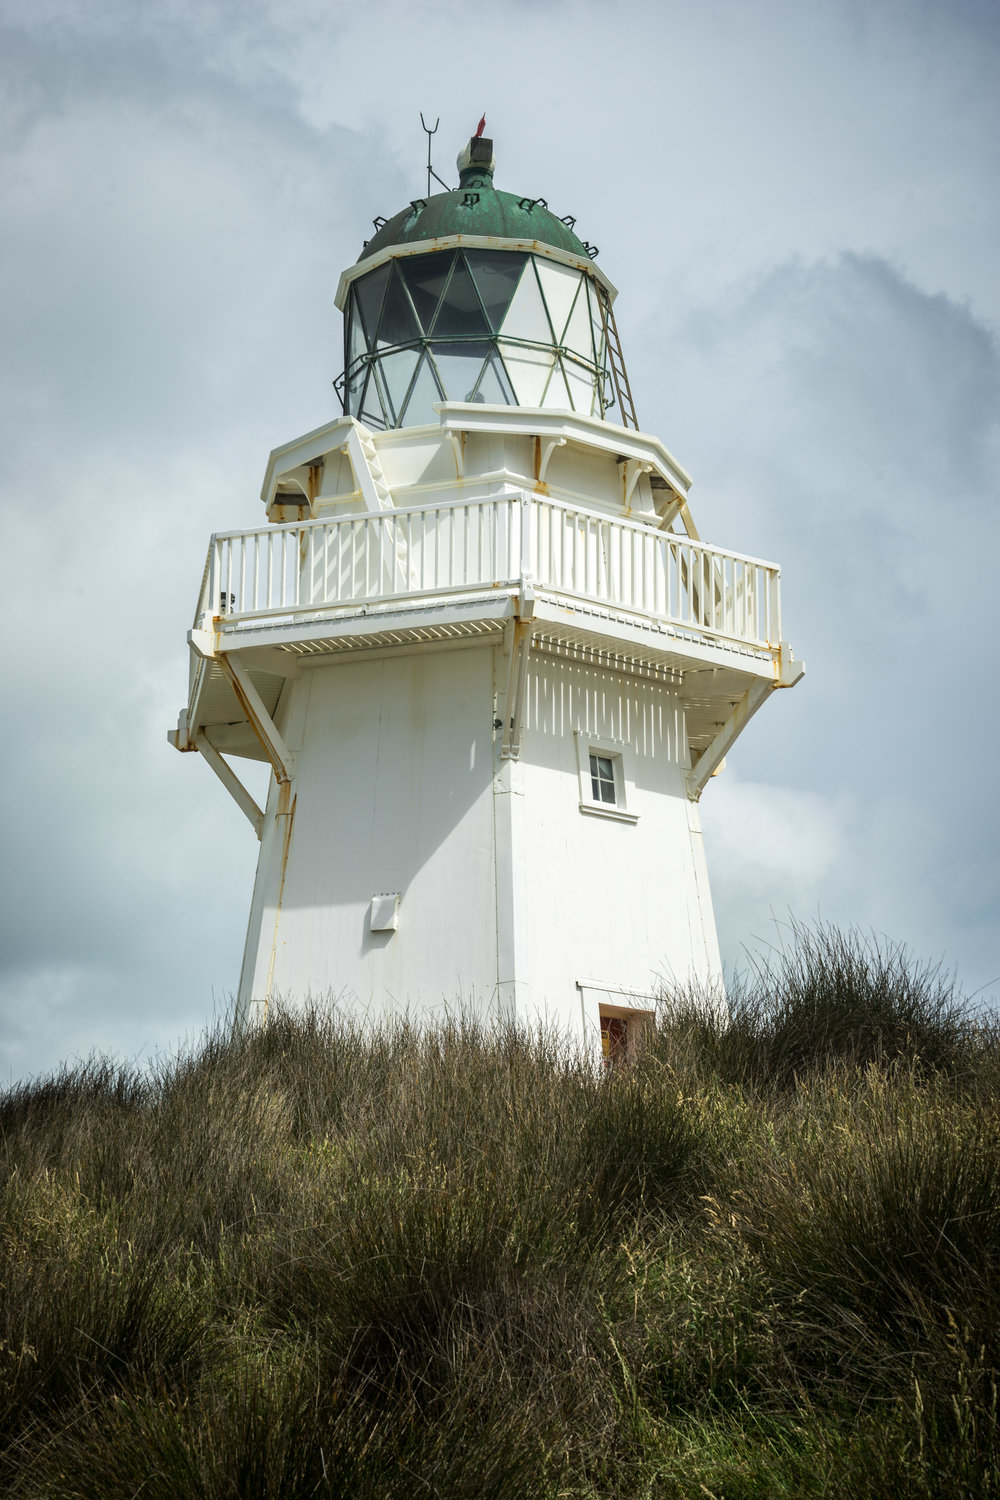 Waipapa Point Lighthouse, home of NZ's deadliest shipwreck